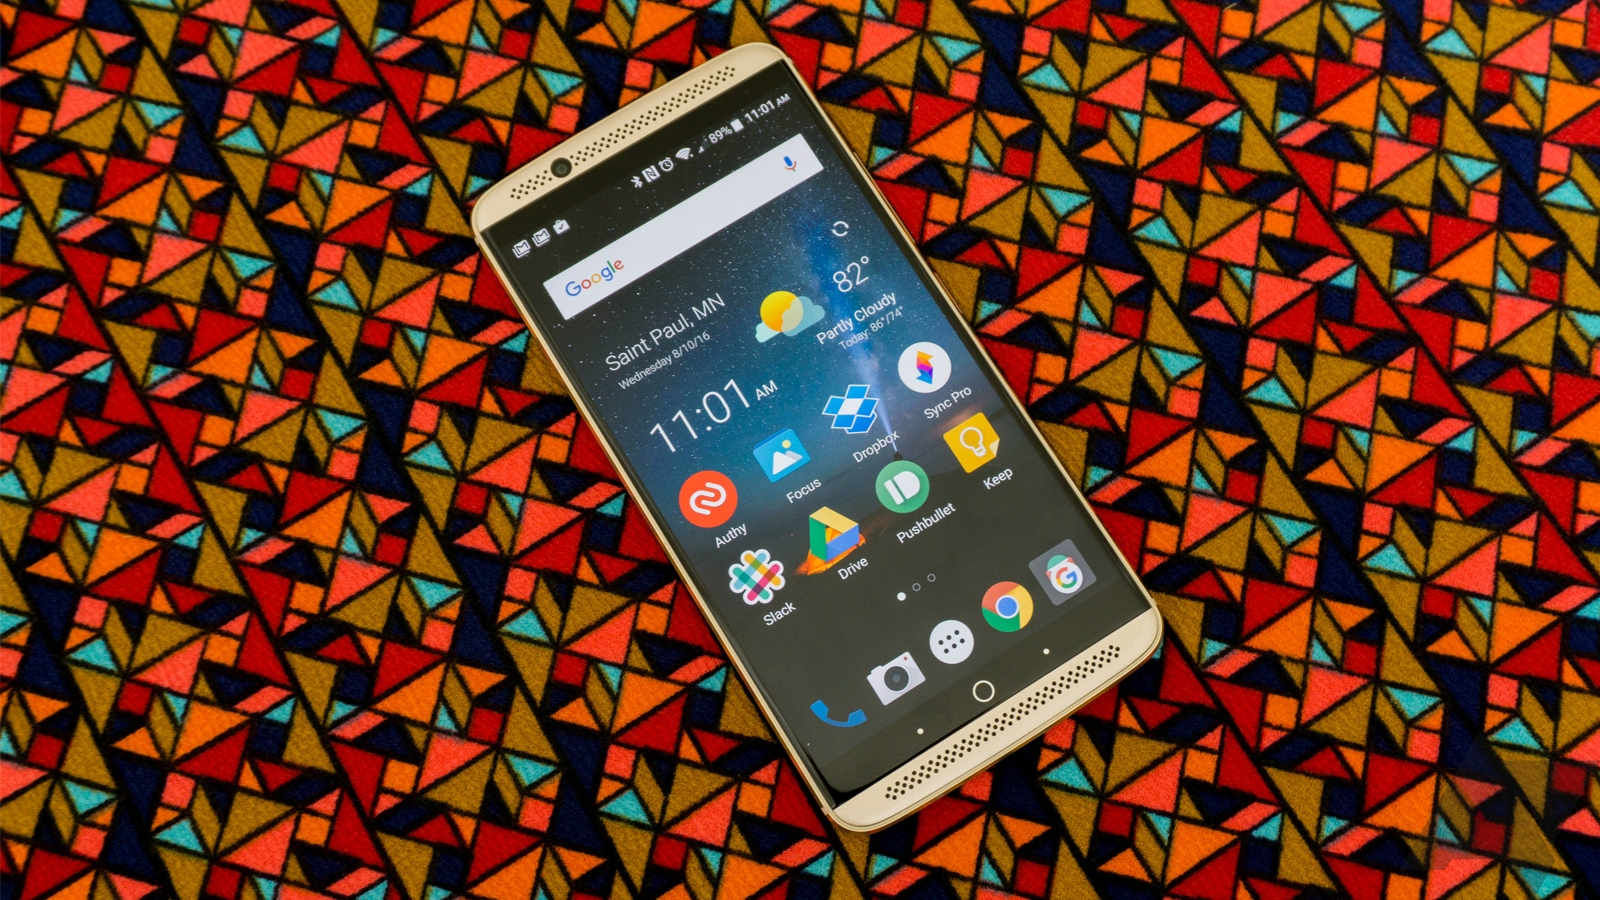 Zte Has Moved On From The Boring Lcds It Used Last Year And Equipped The  Axon 7 With A Qhd Amoled Display The Colors Are Bright And Vivid,